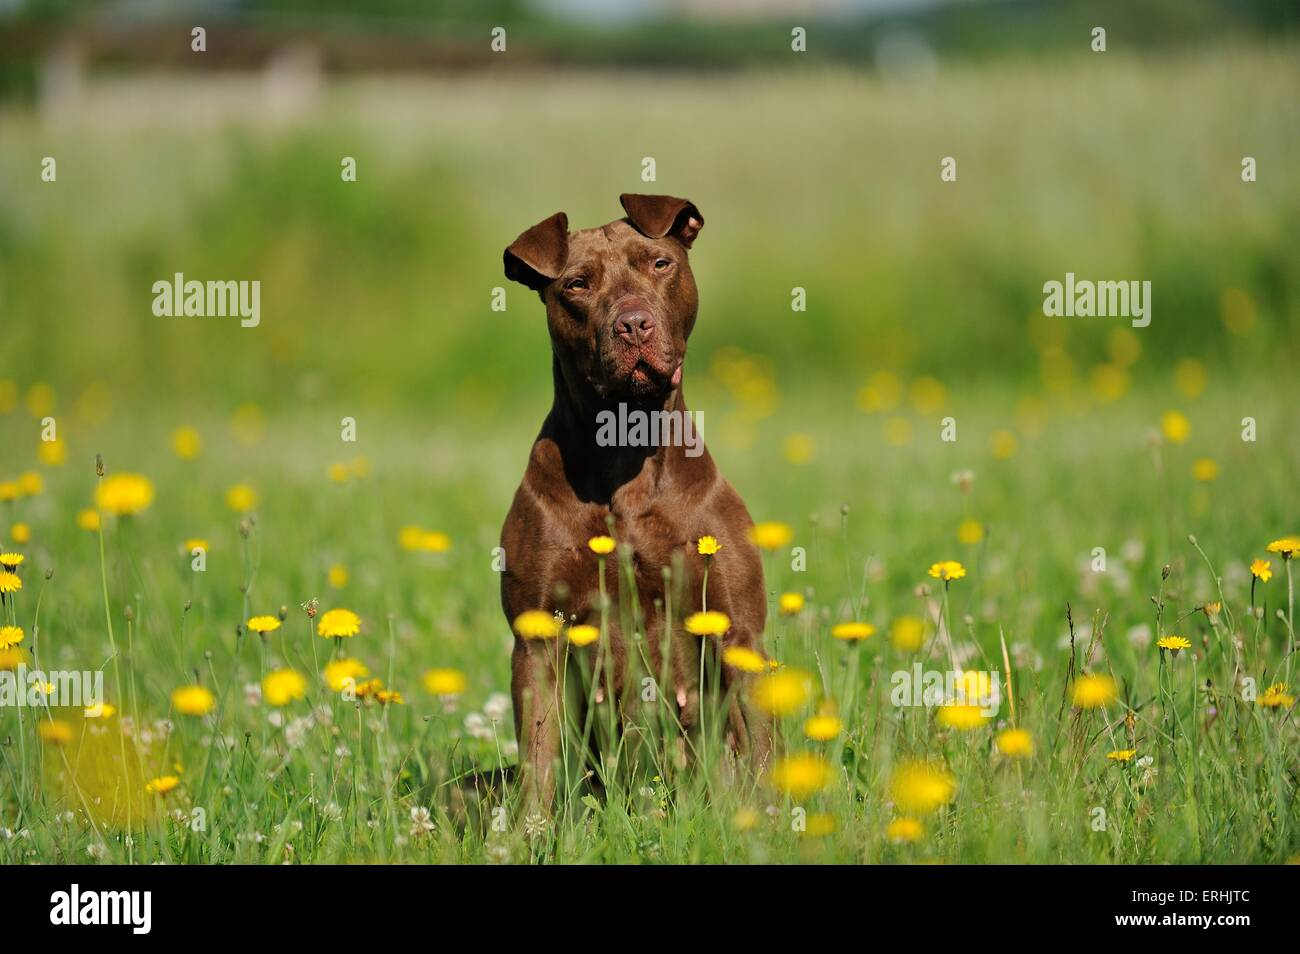 sitting American Pit Bull Terrier - Stock Image